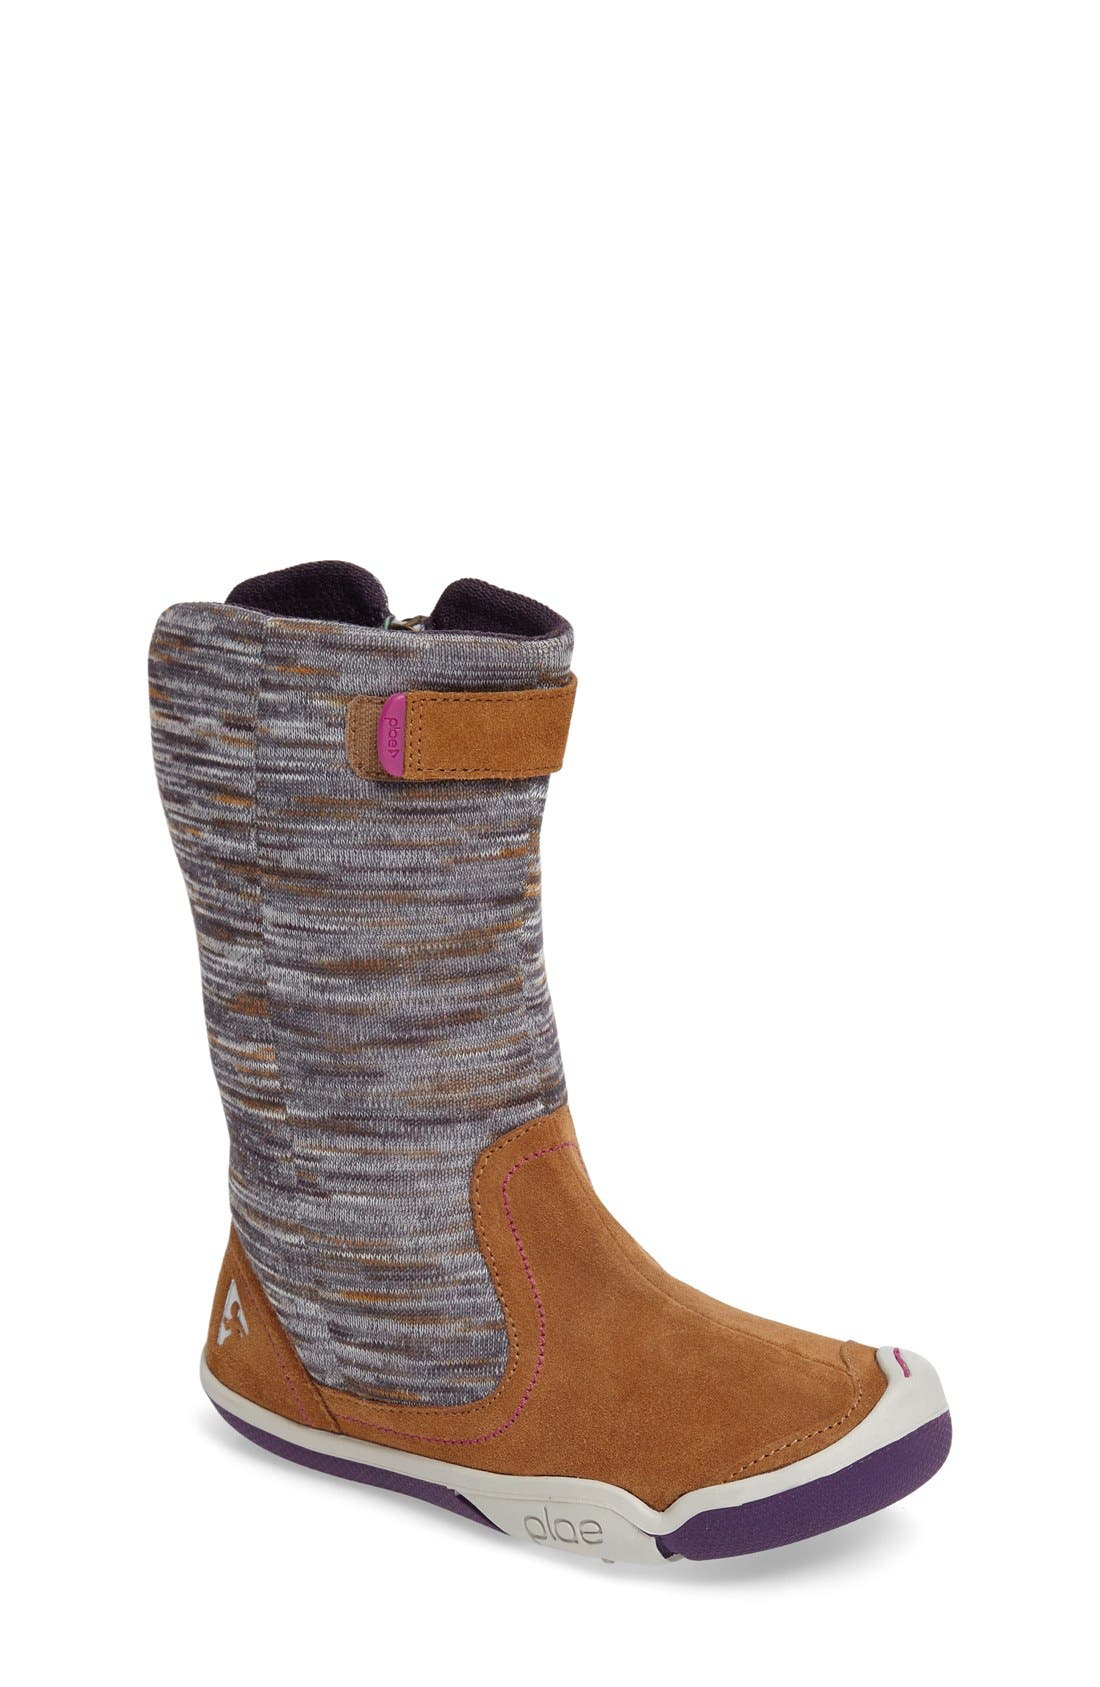 PLAE Claire Customizable Boot